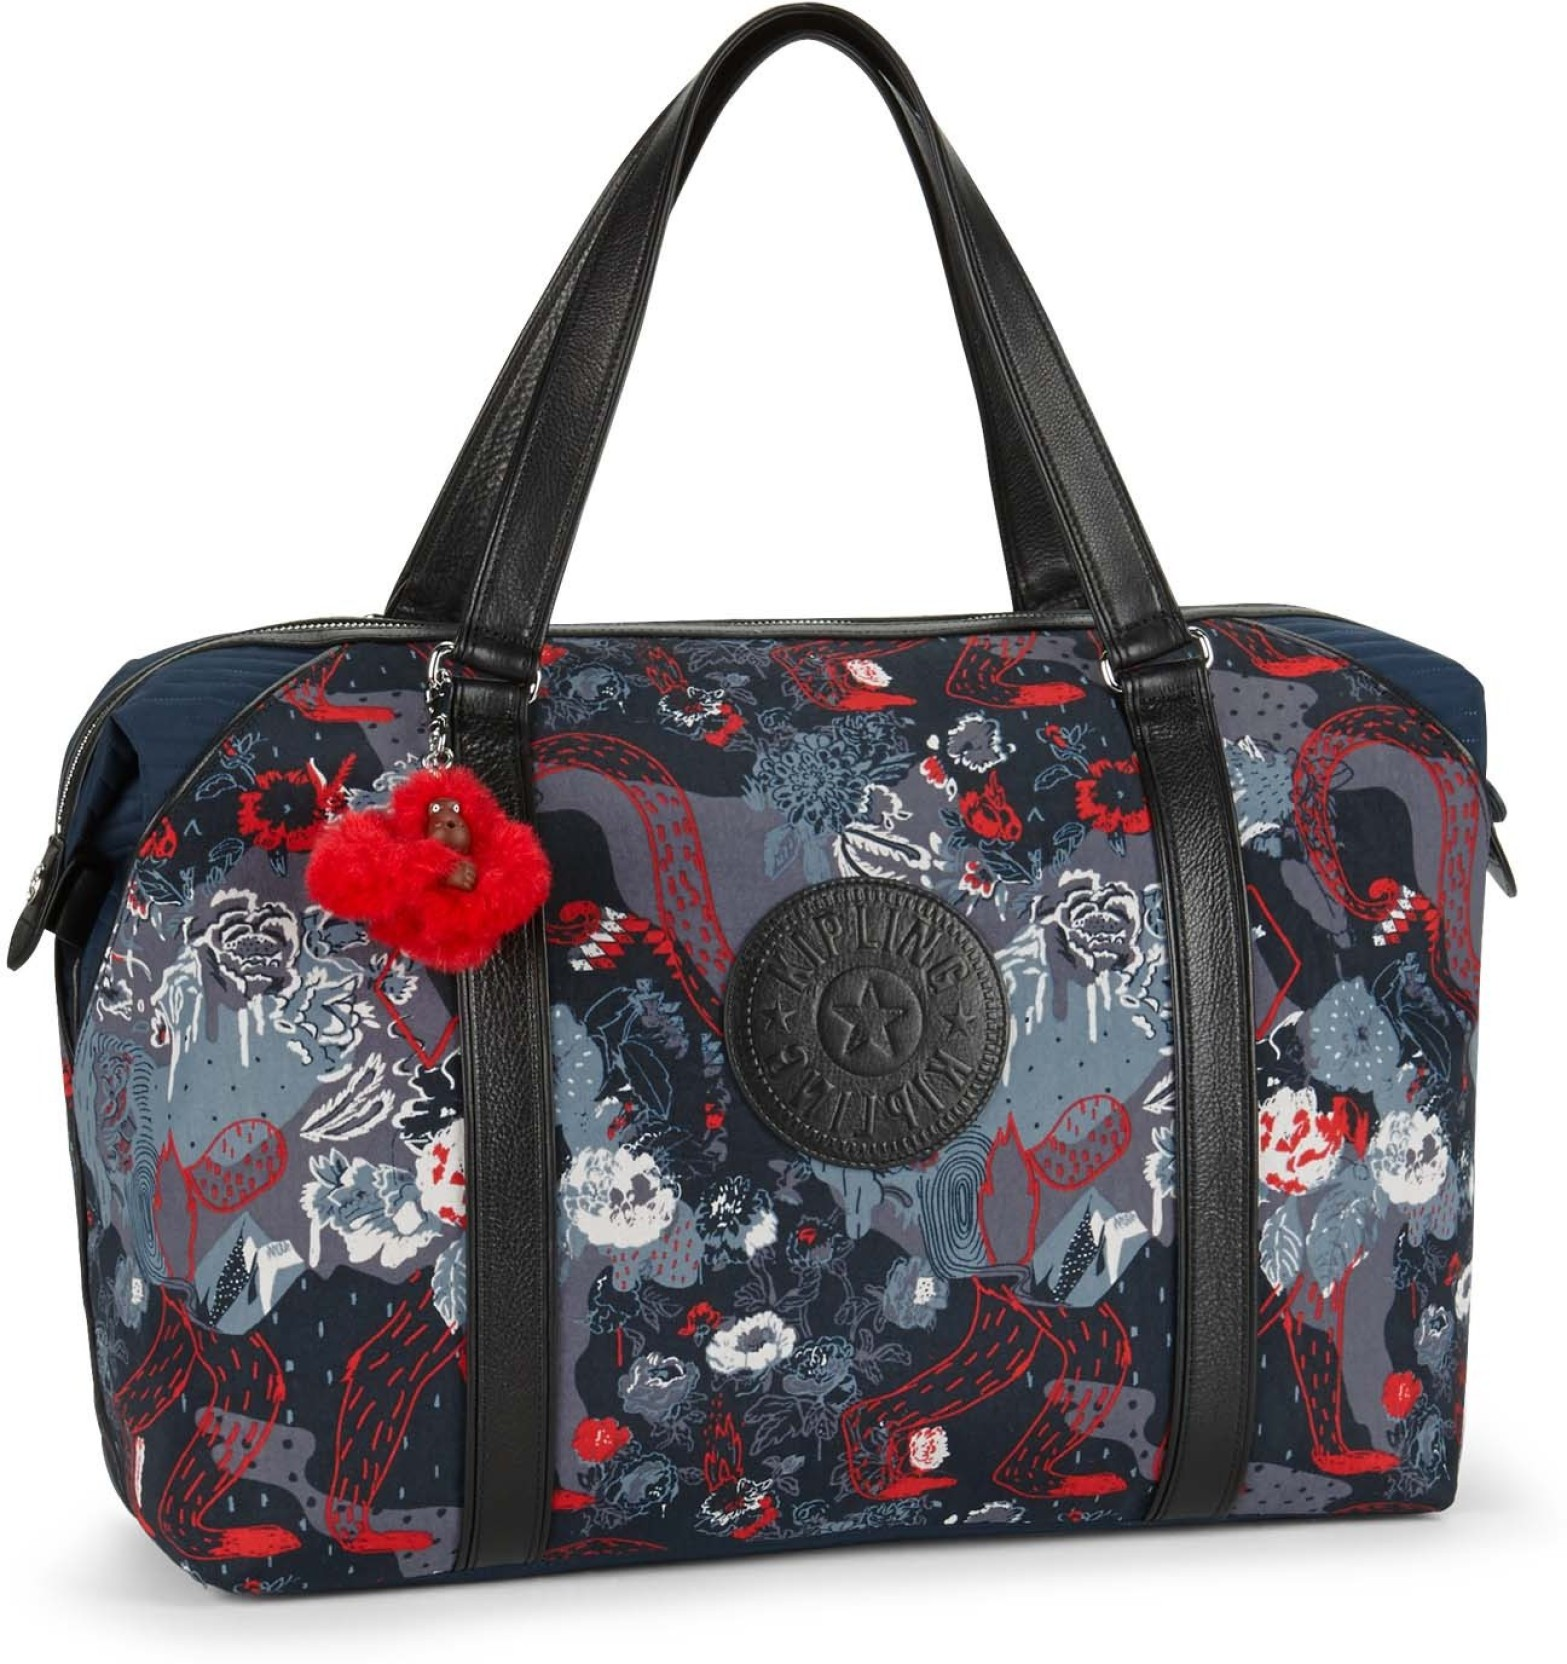 f686f6e7e7 Kipling ART M Small Travel Bag - Large - Price in India